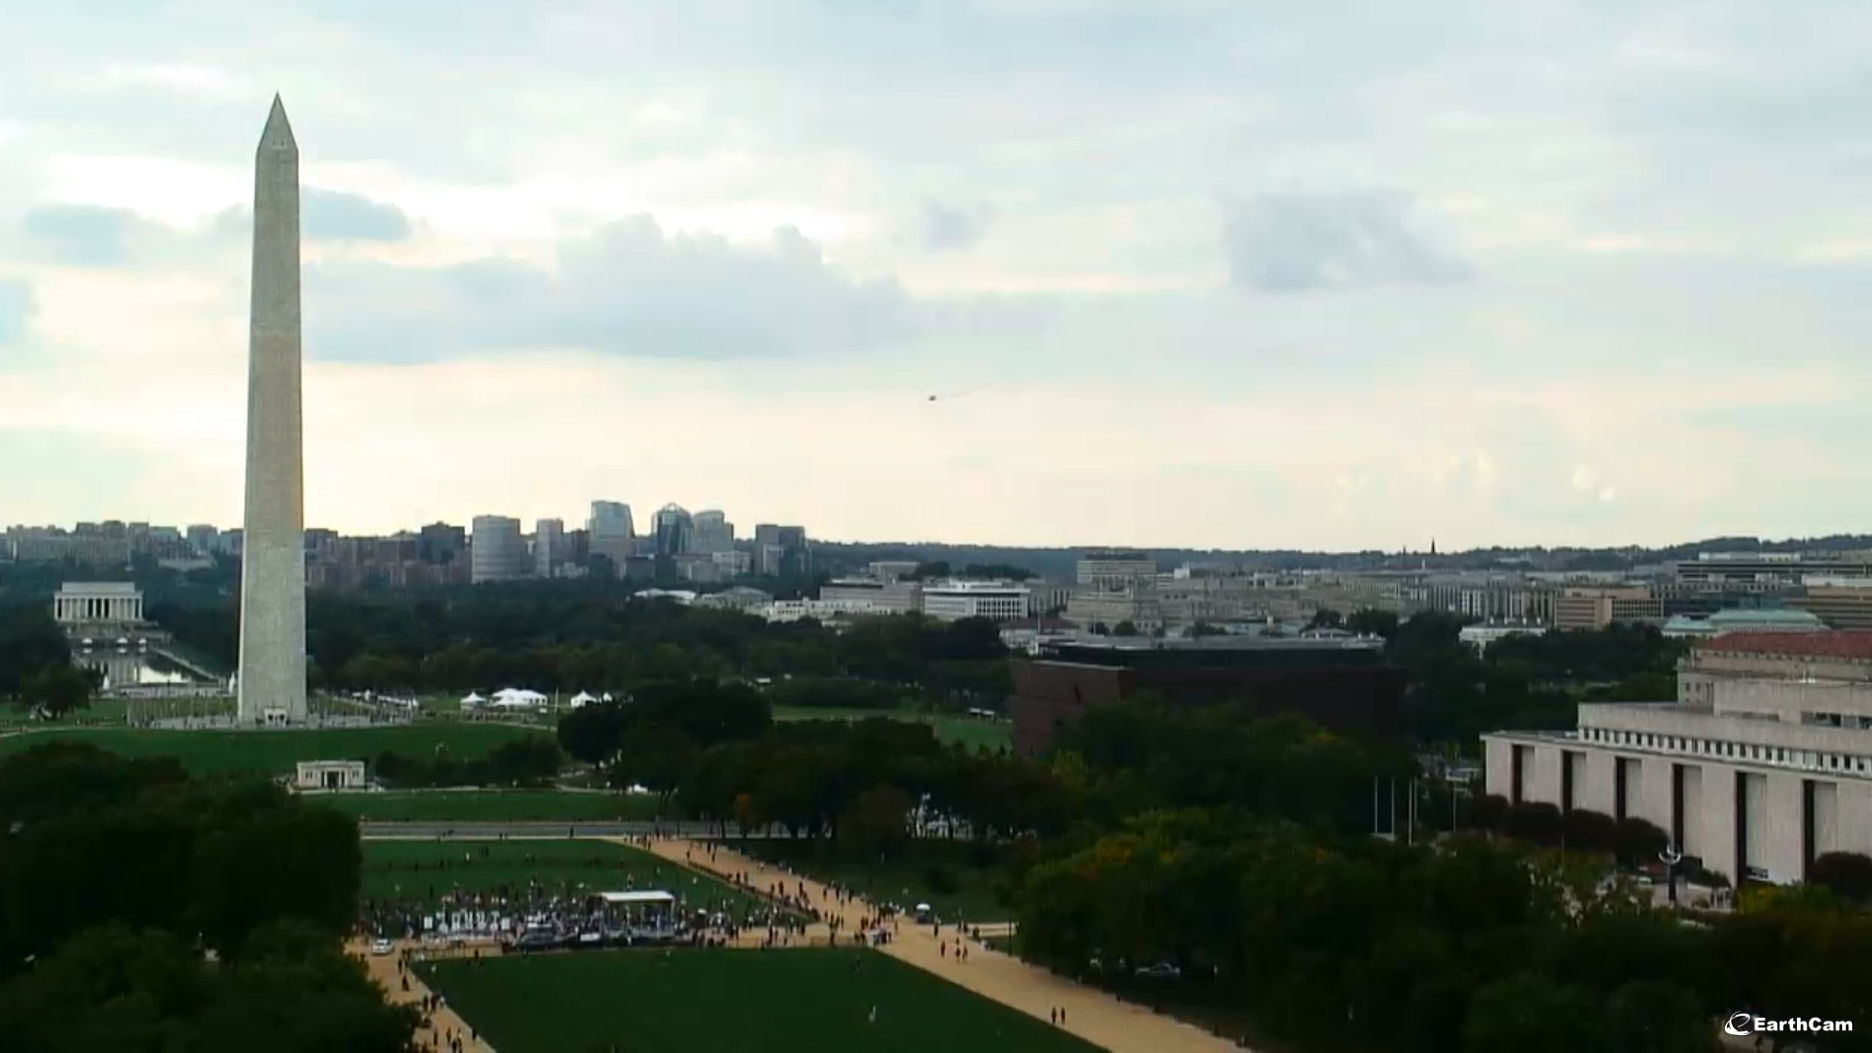 A view of the National Mall Saturday, Sept. 16, 2017, during the rally. (Courtesy EarthCam)